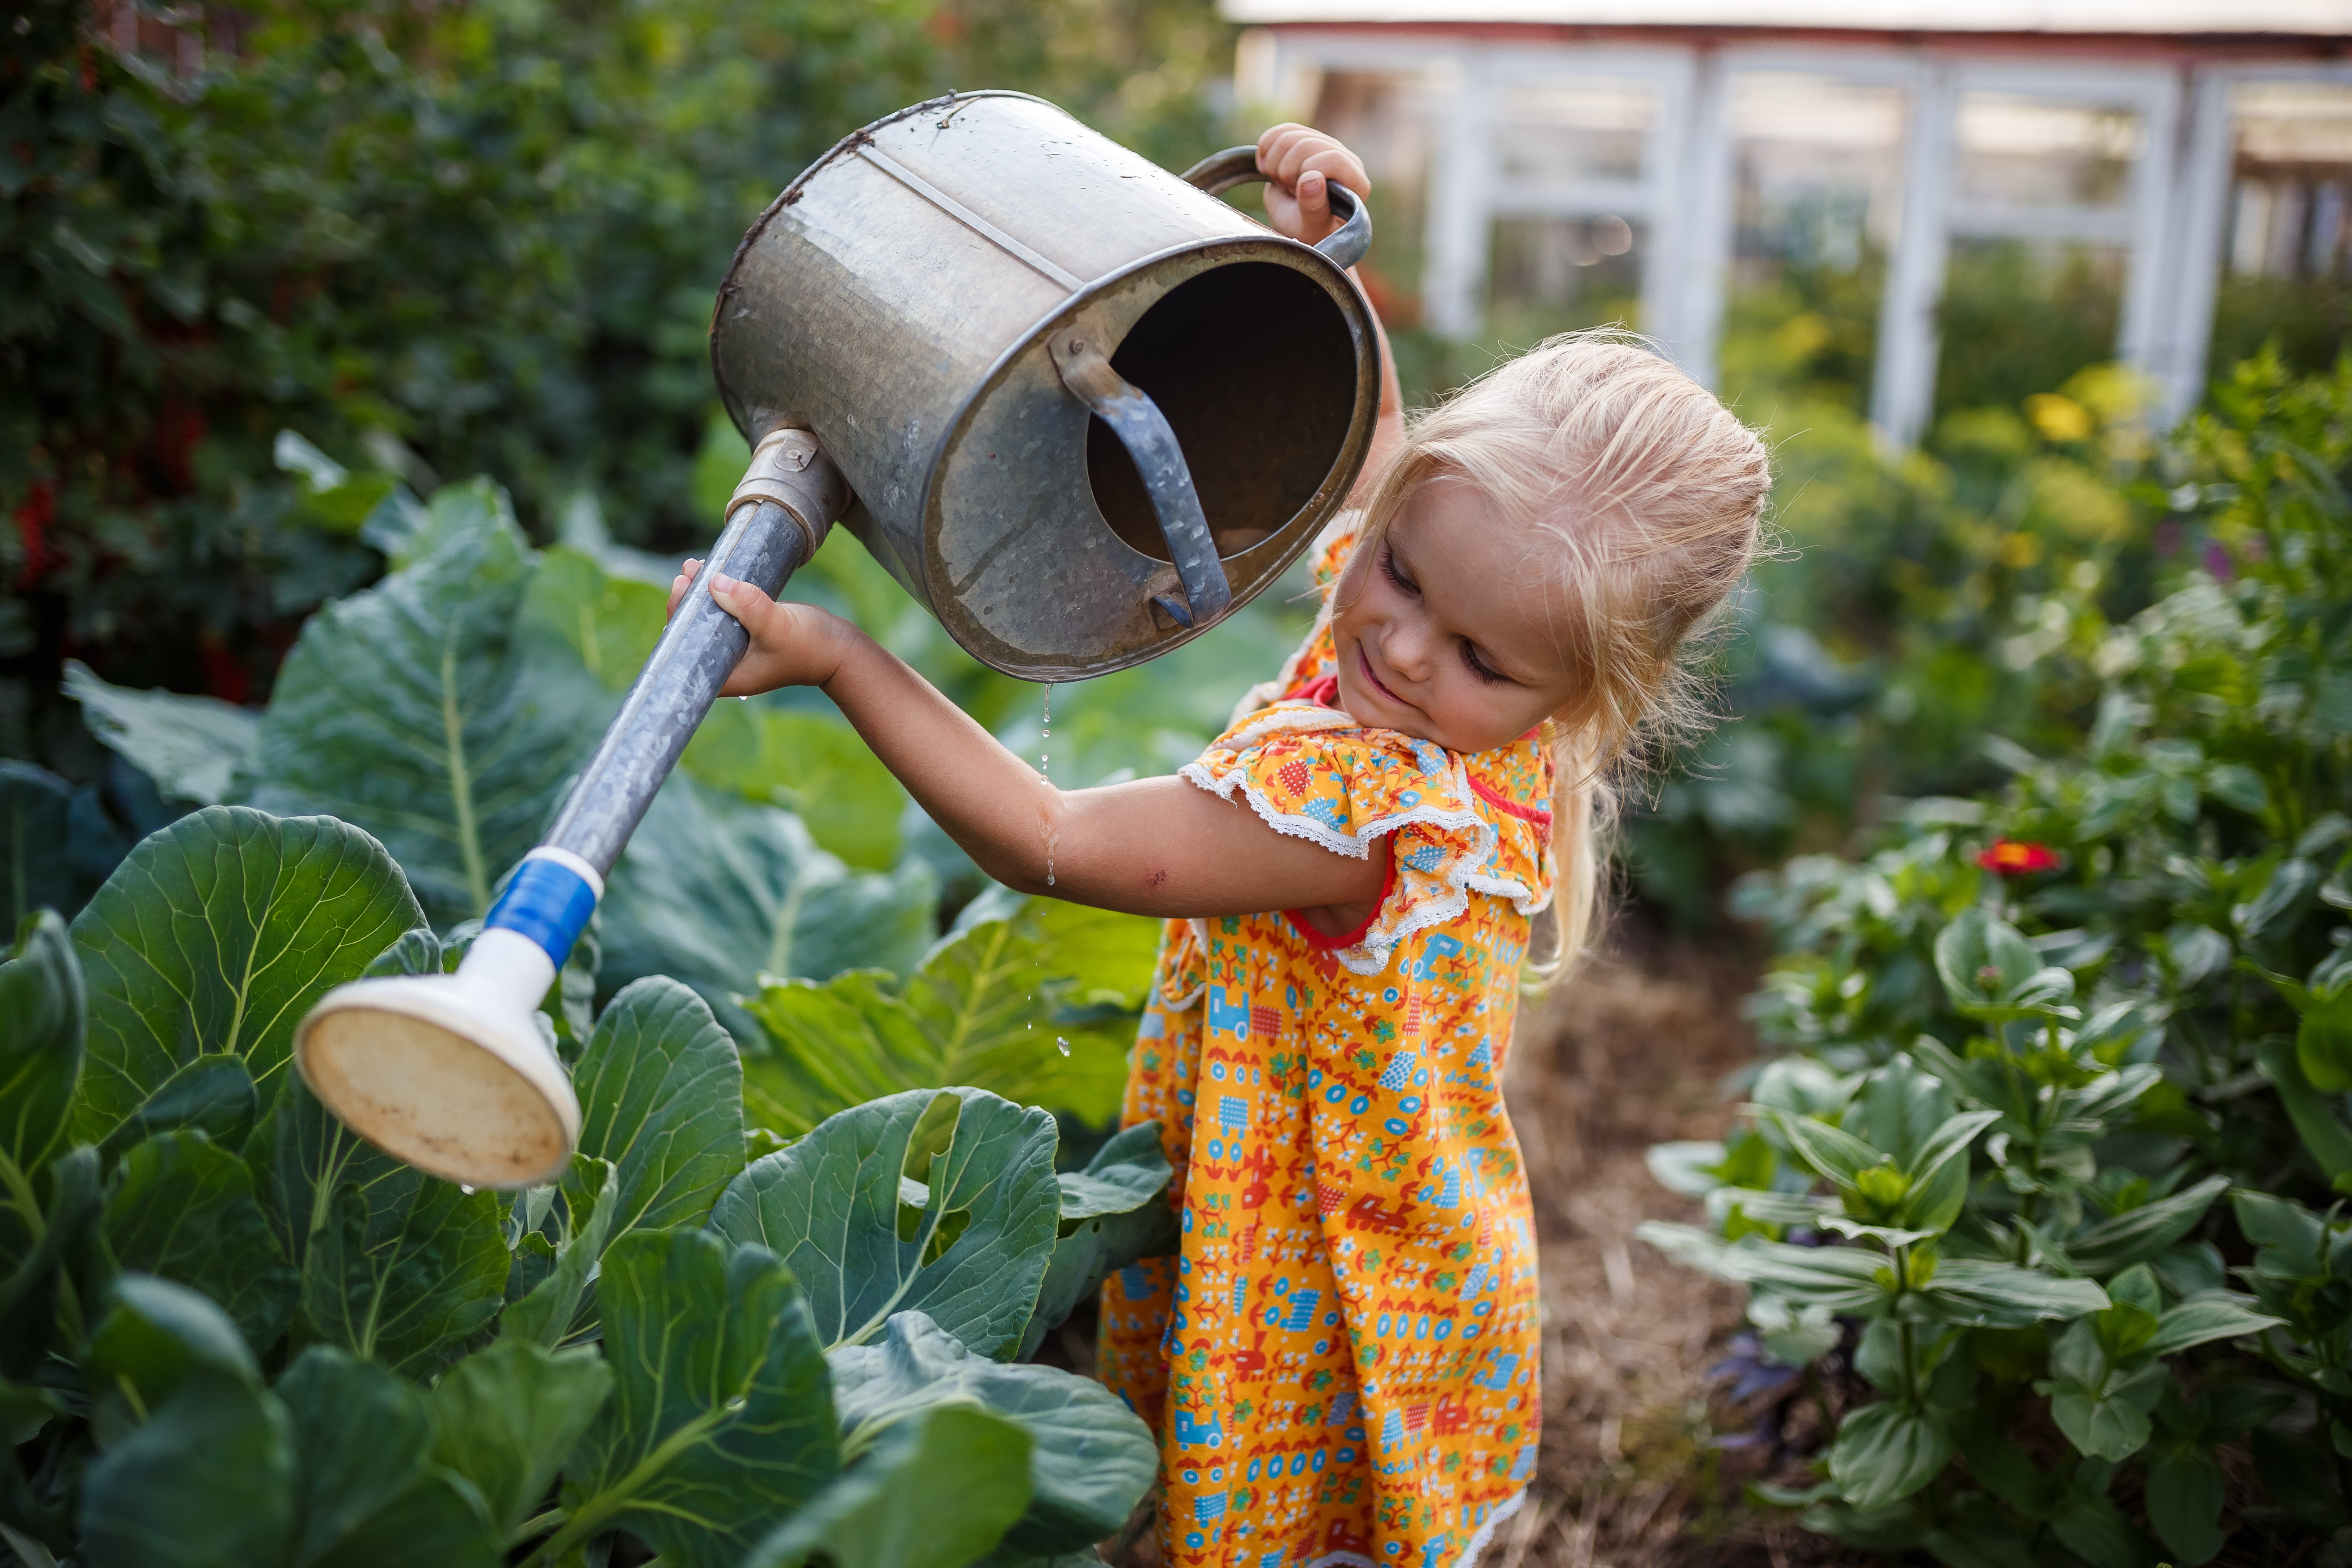 girl child in the garden watering plants, a small gardener, summer in the village